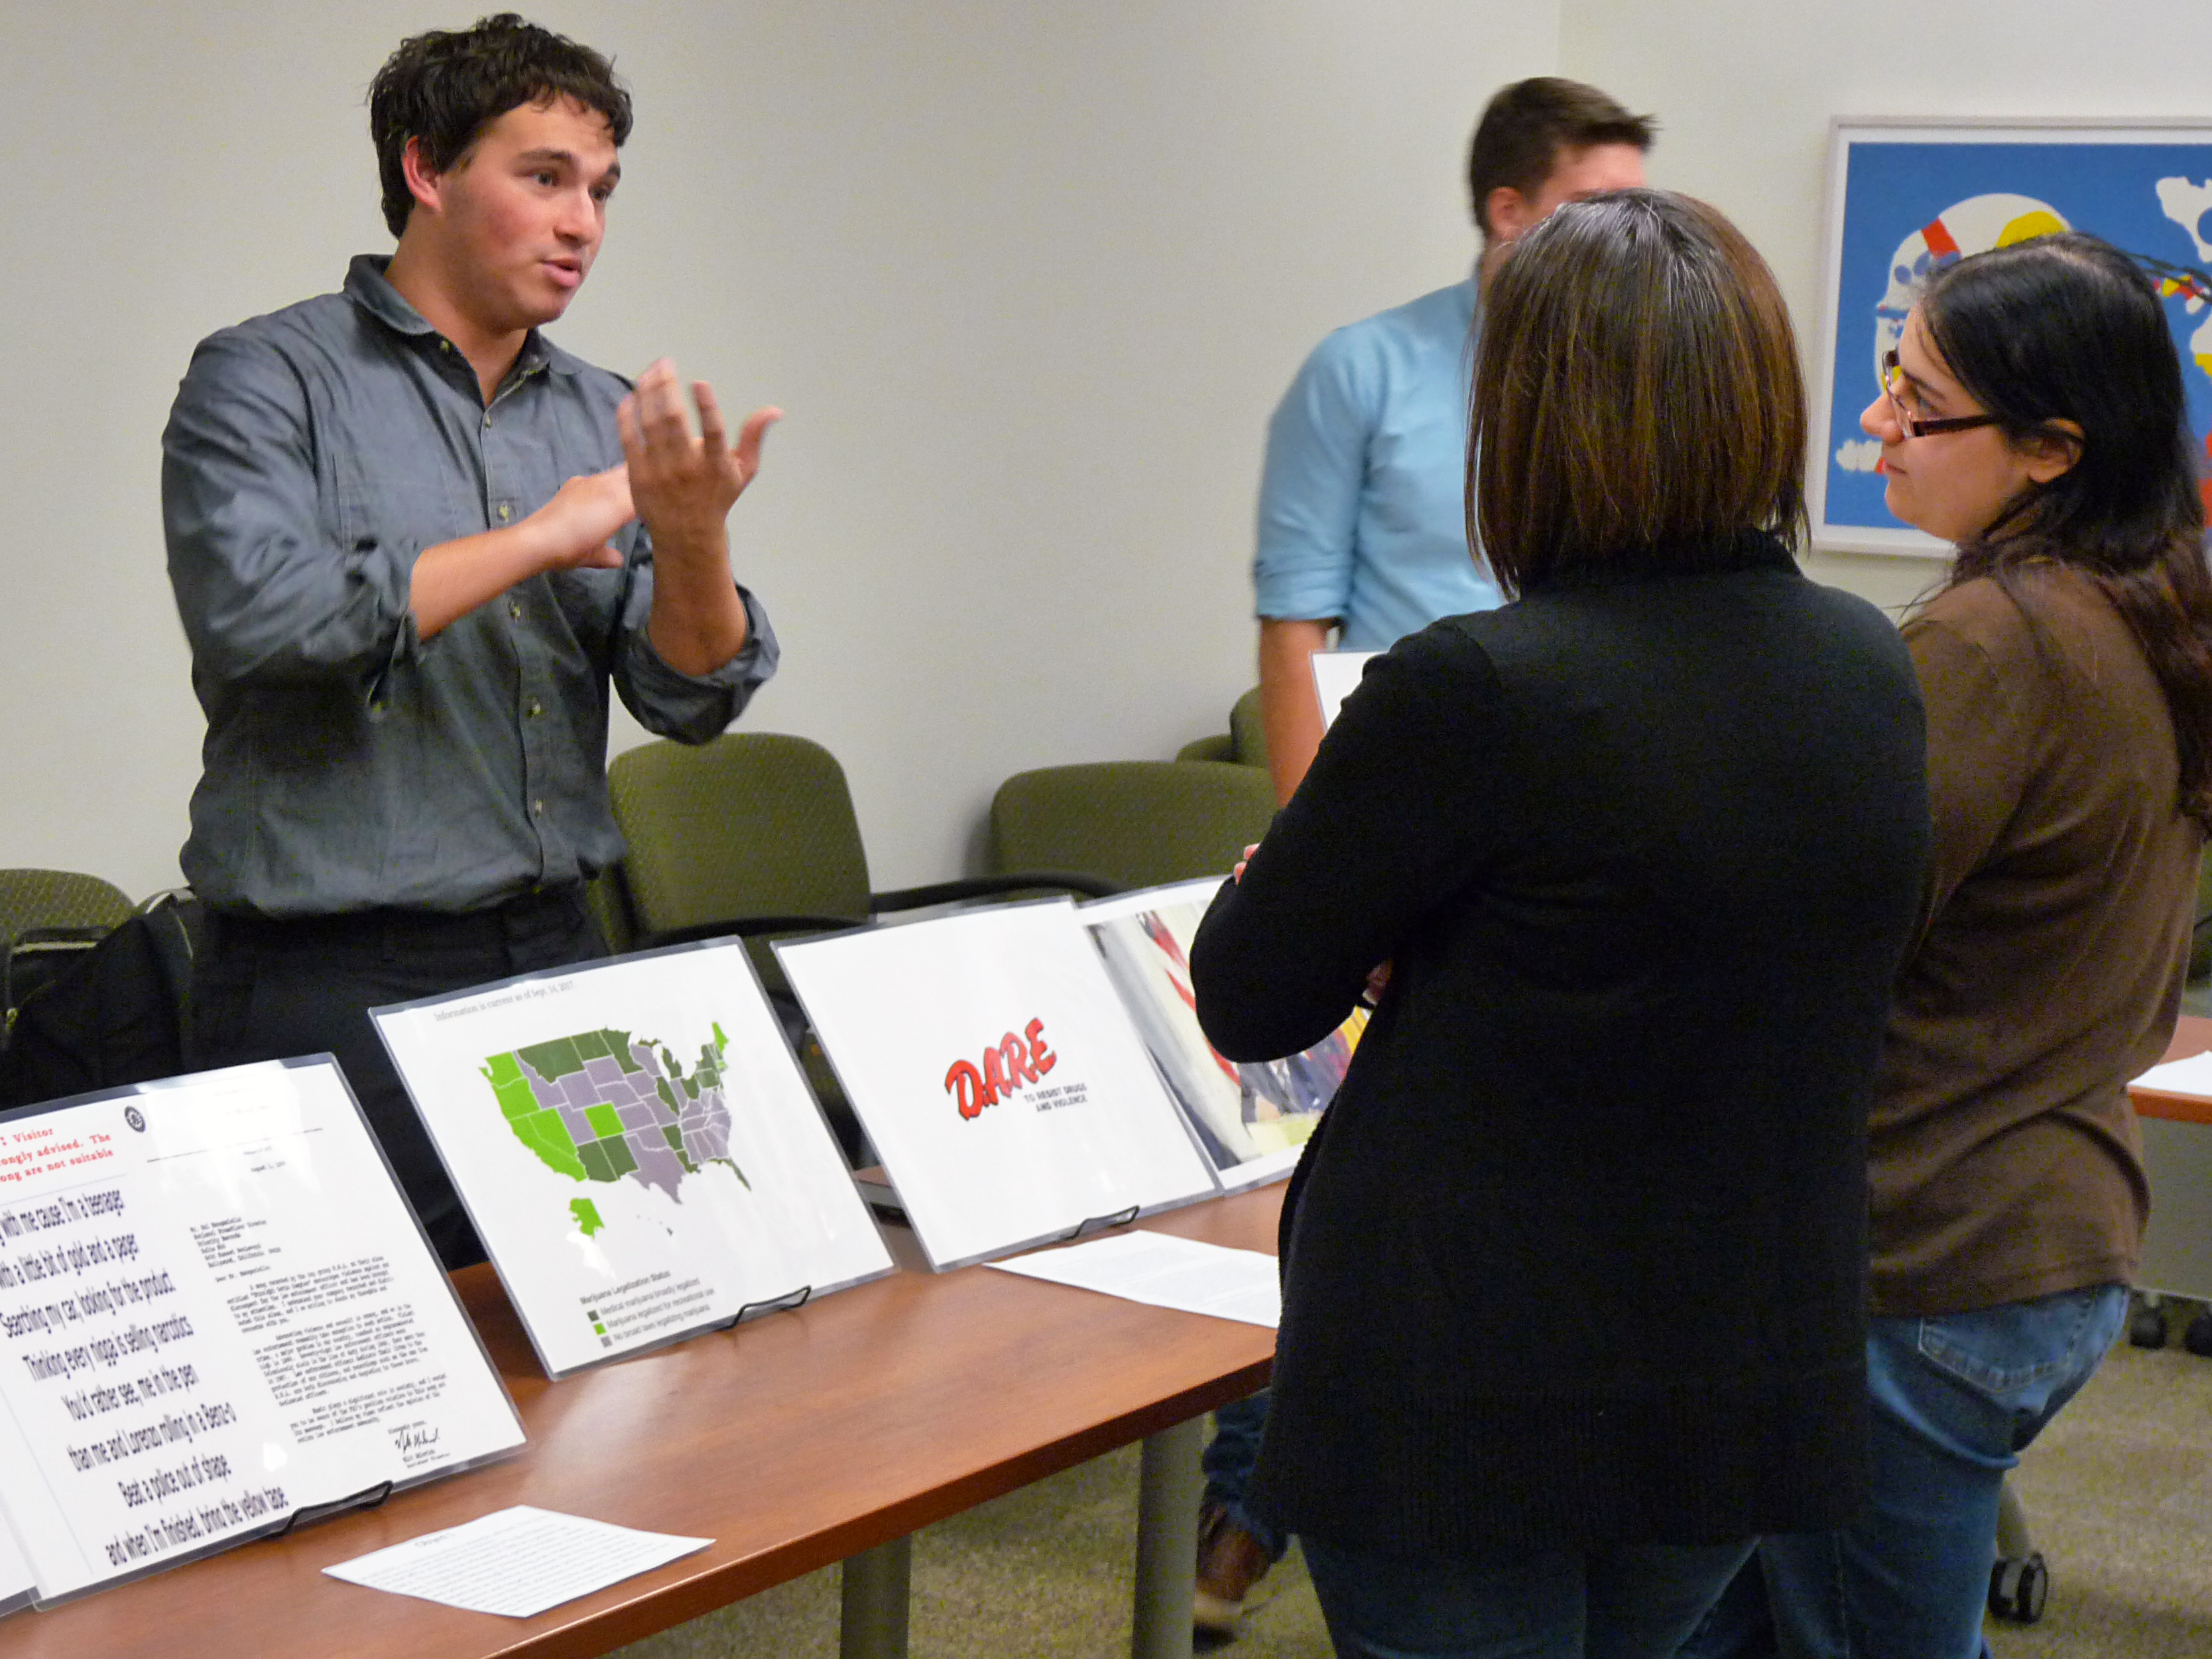 A student discusses his criminal justice research with community members